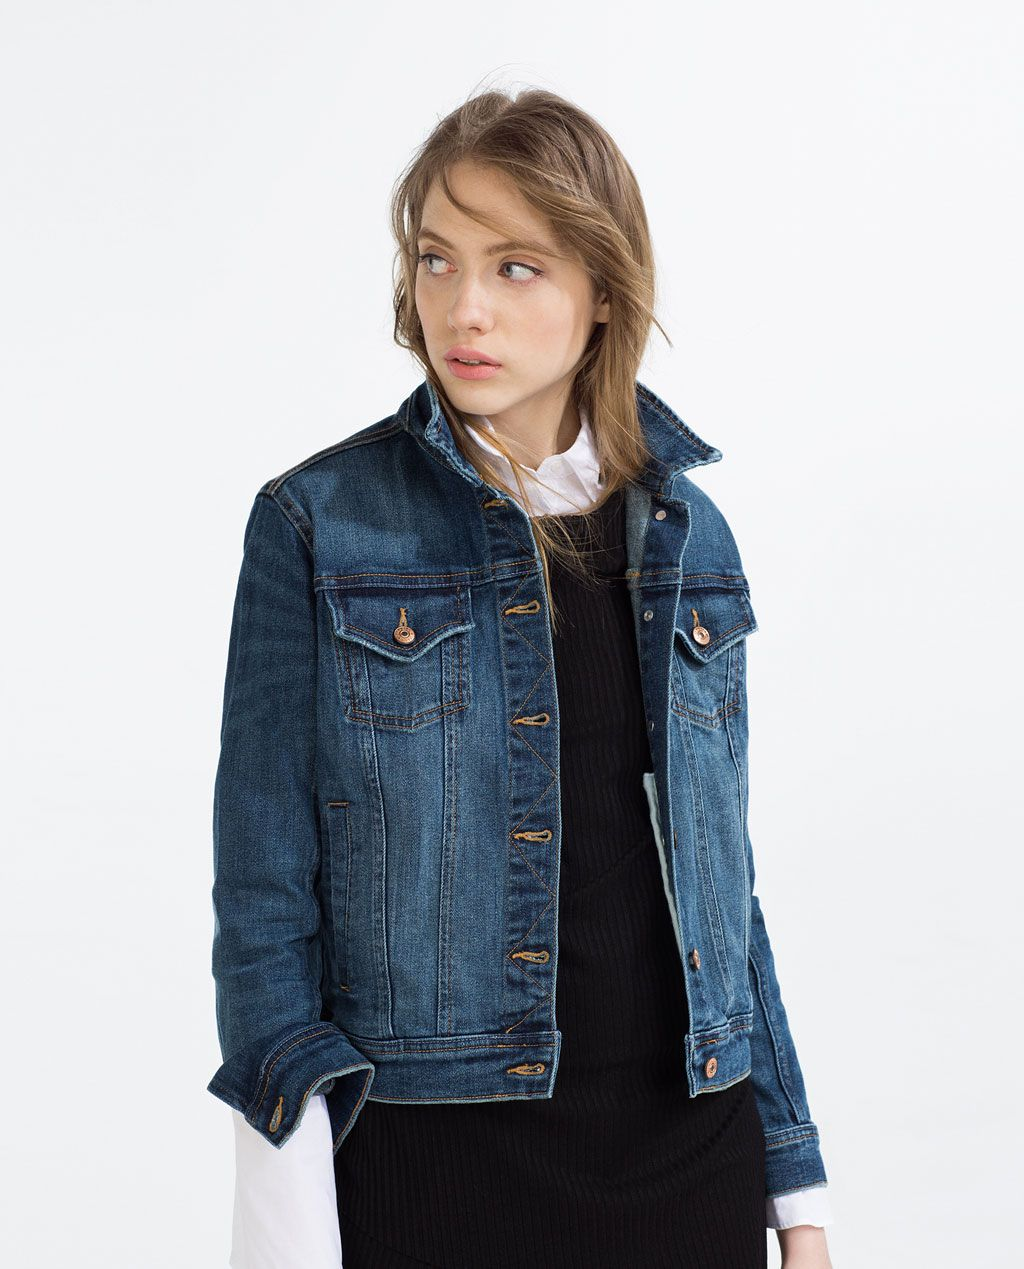 Basic Denim Jacket D E N I M O U T E R W E A R Pinterest